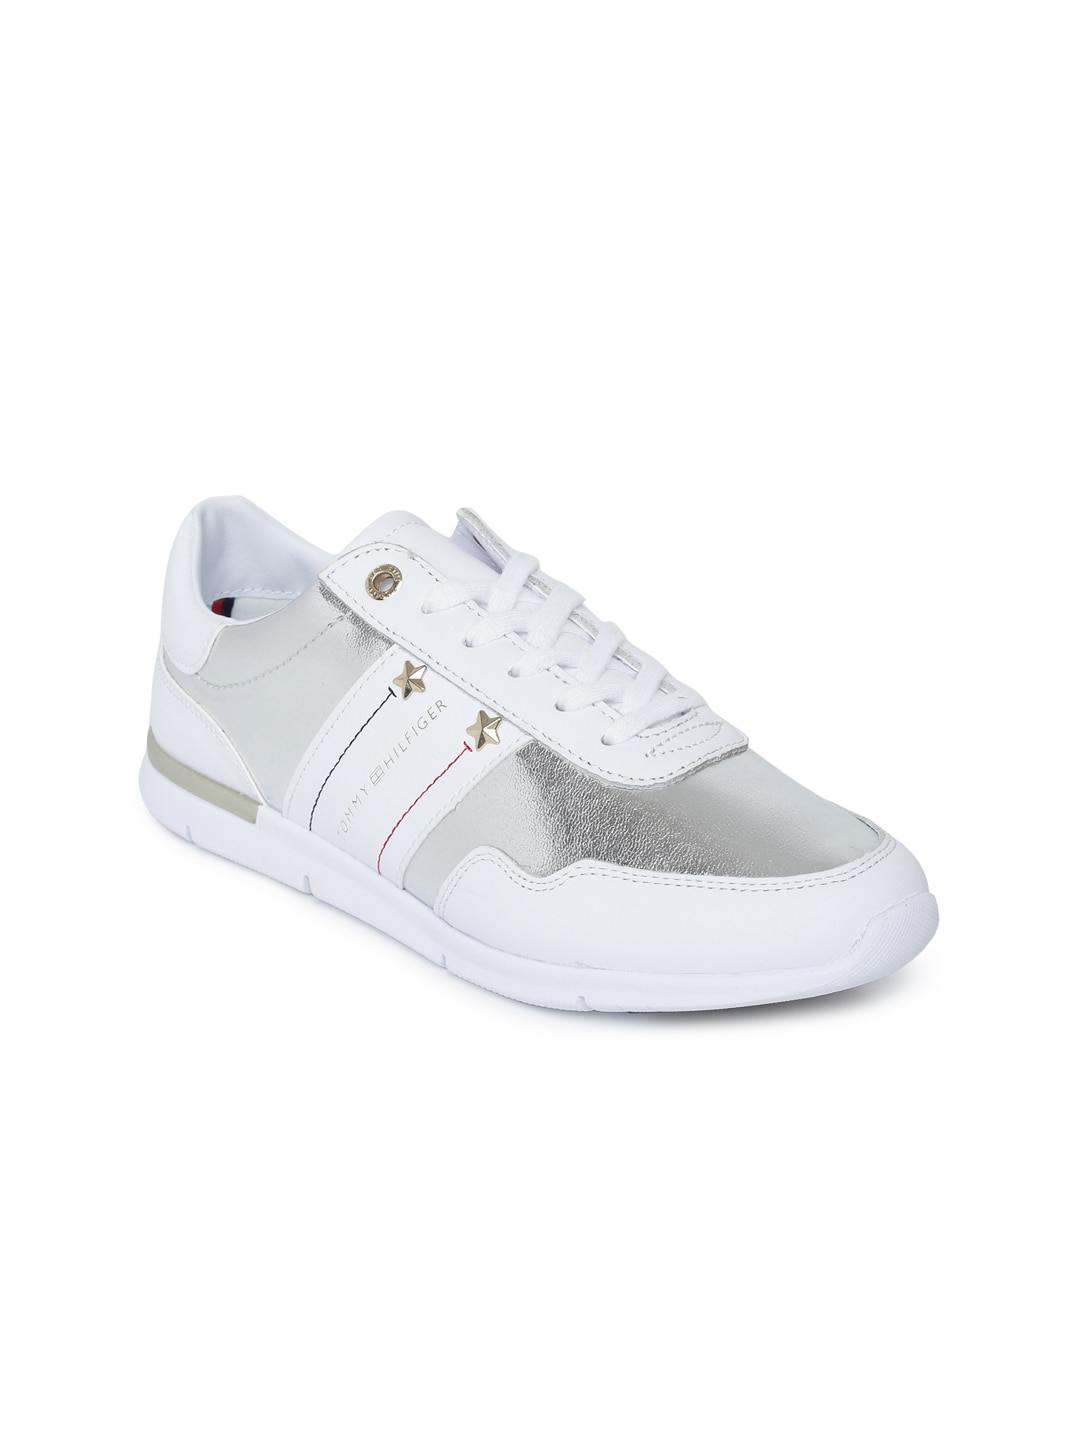 9efb496a542c Women Tommy Hilfiger Footwear - Buy Women Tommy Hilfiger Footwear online in  India